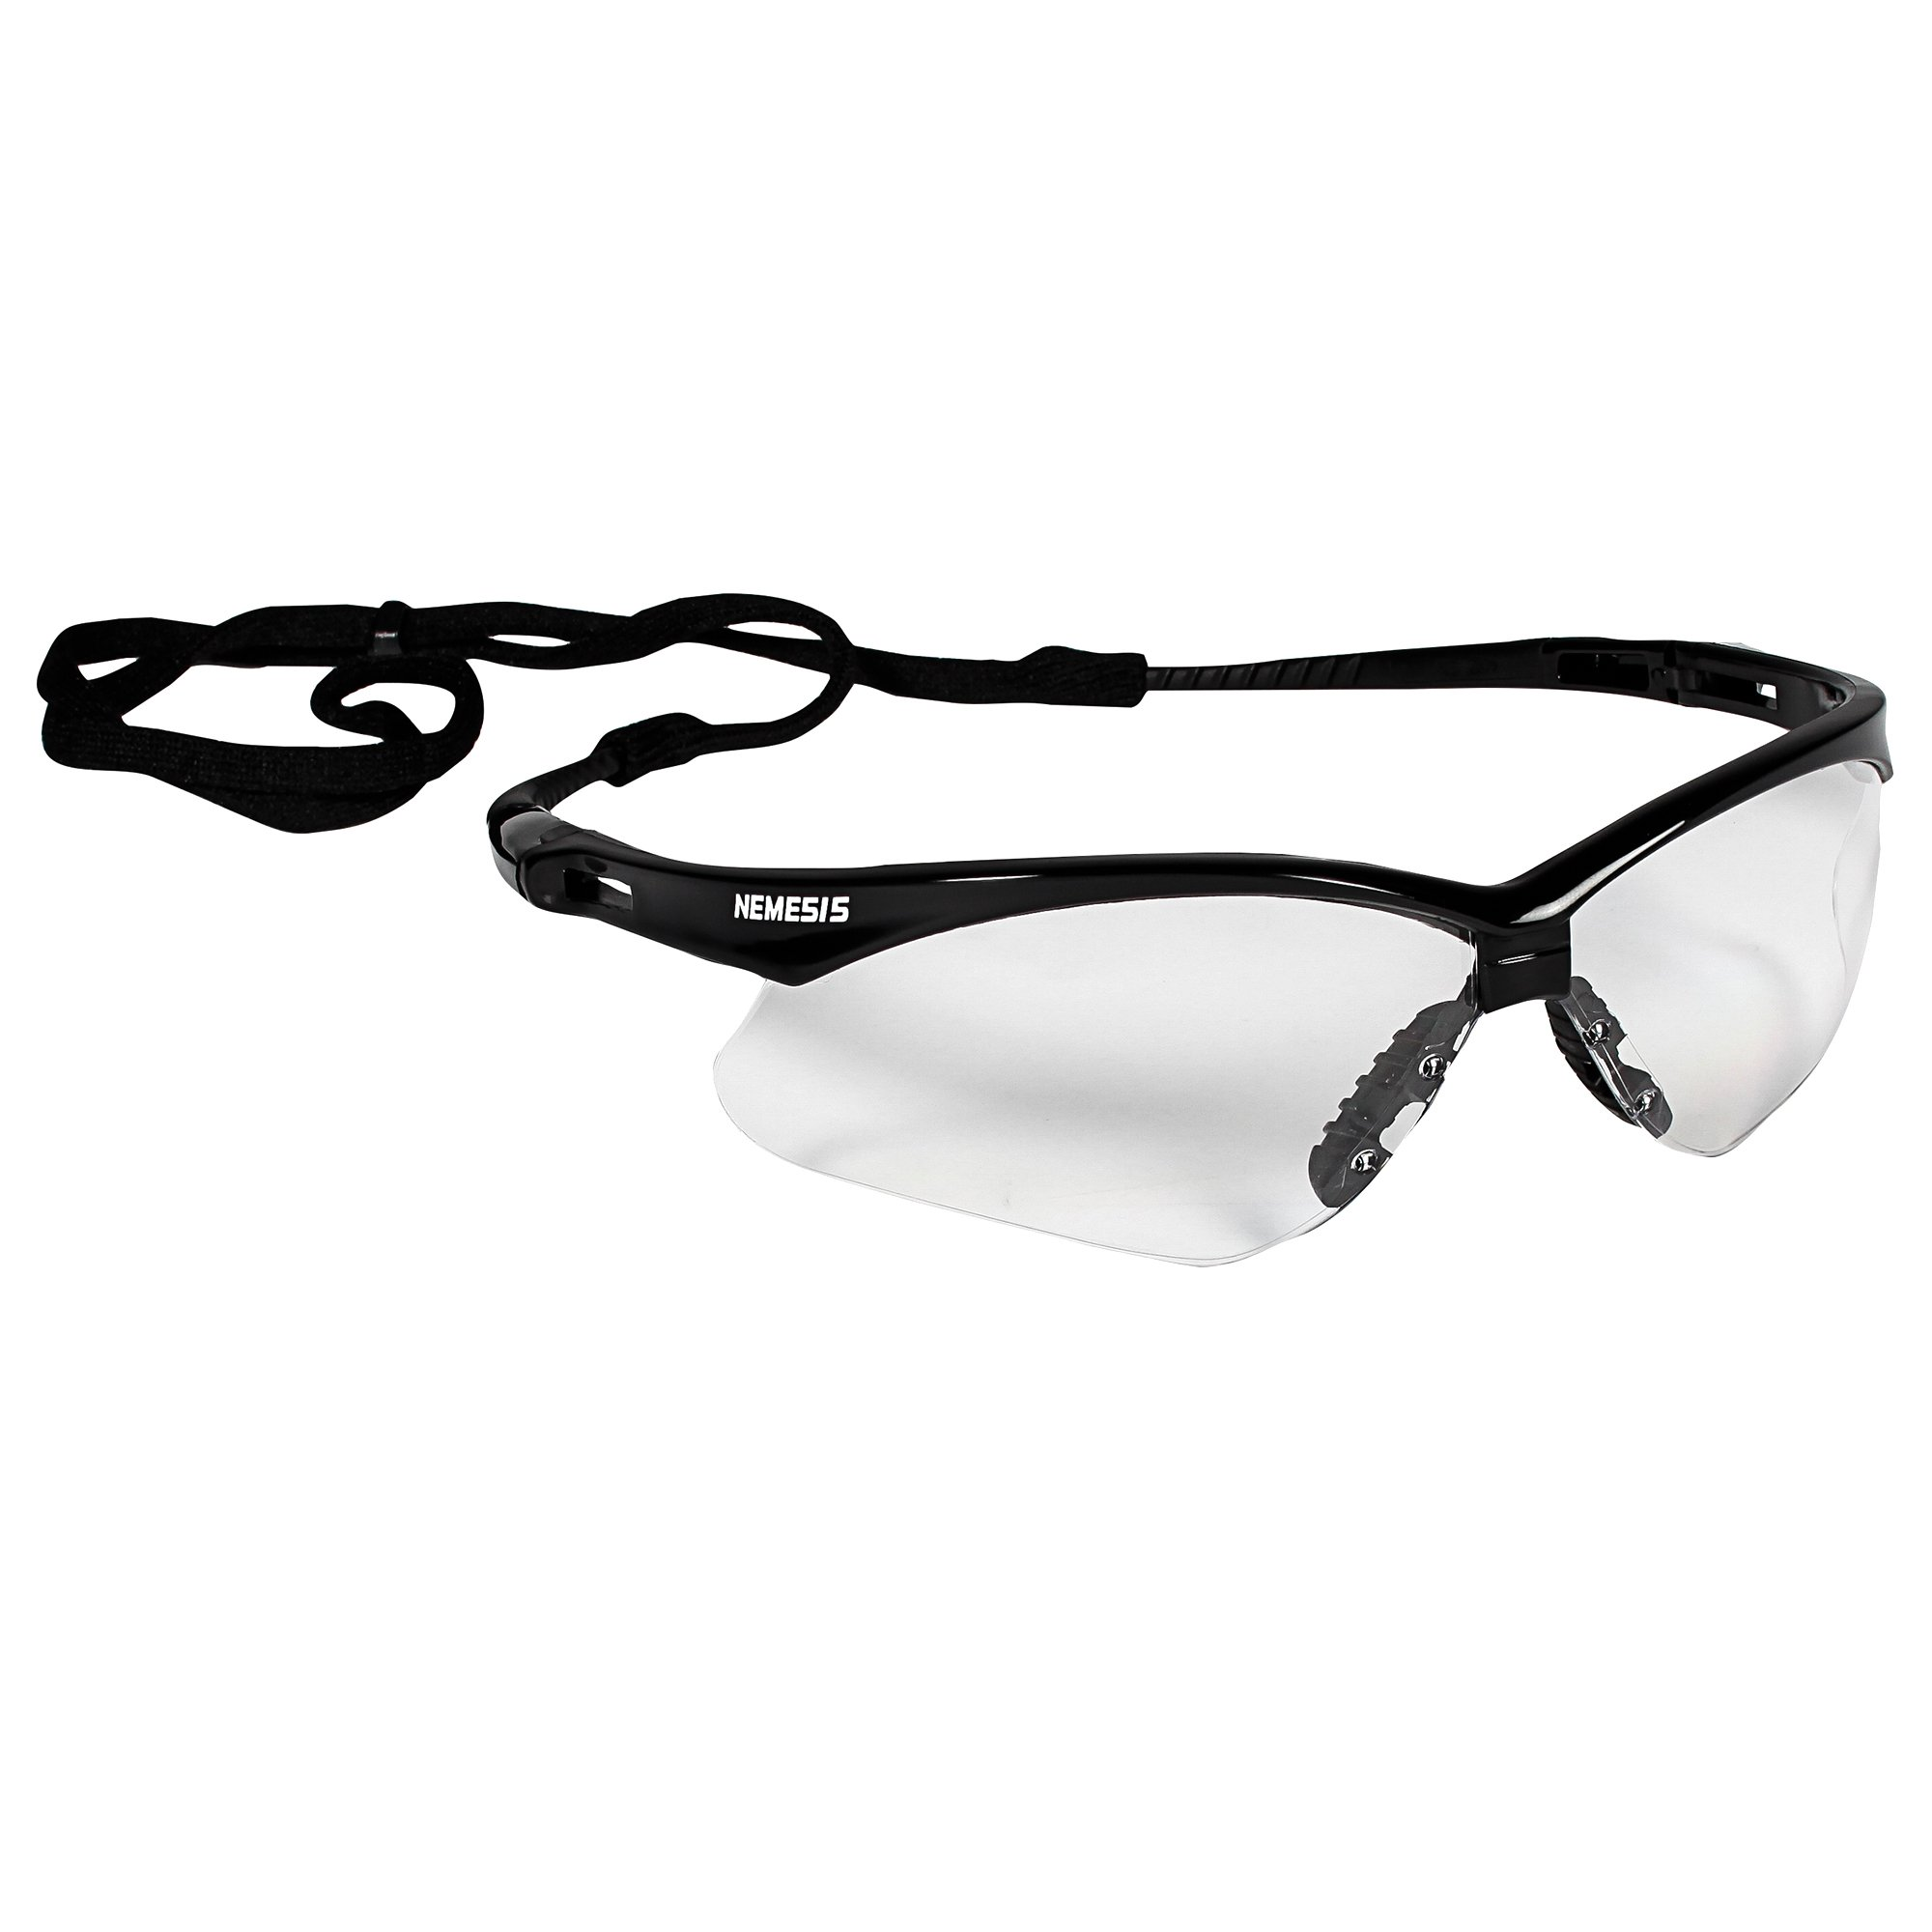 Jackson Safety Nemesis Safety Glasses 25679, Clear Anti-Fog Lens with Black Frame, 12 Pairs/Case